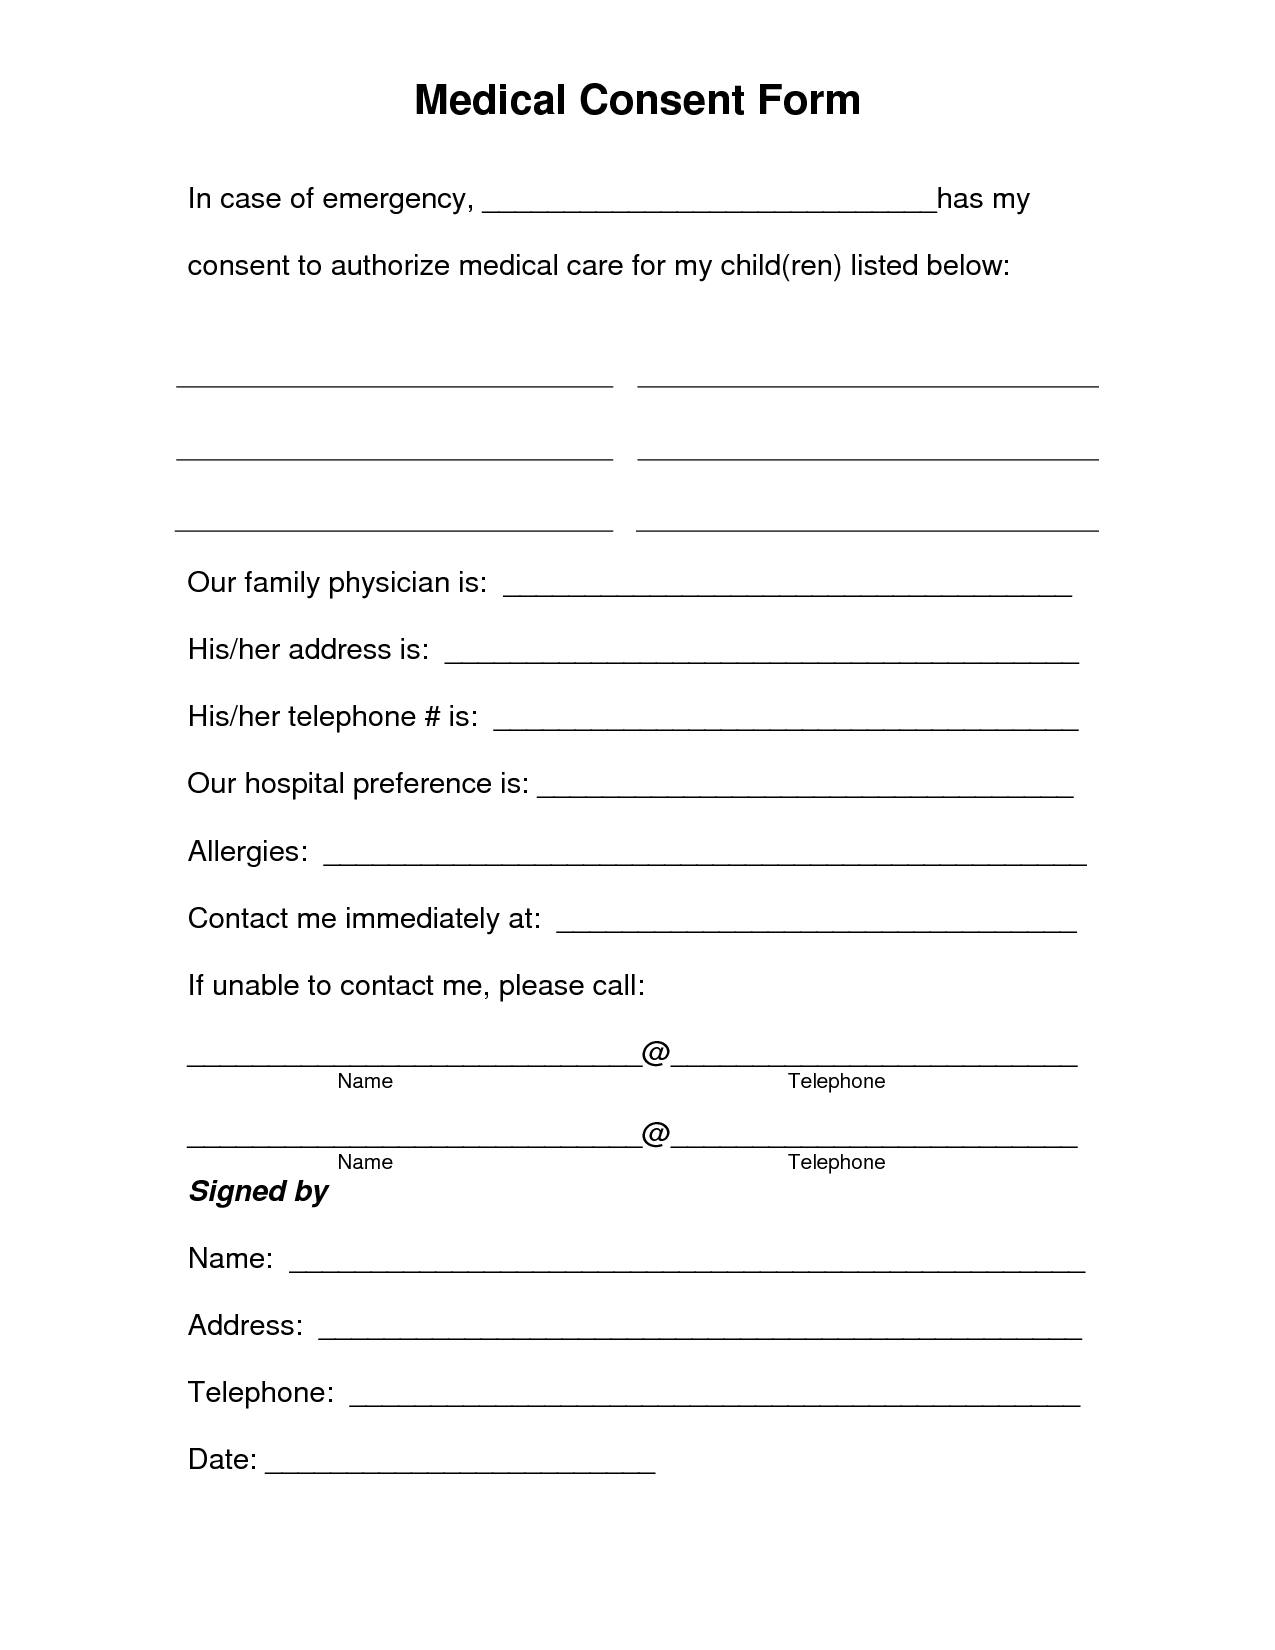 Free Printable Medical Consent Form | Free Medical Consent Form - Free Printable Child Medical Consent Form